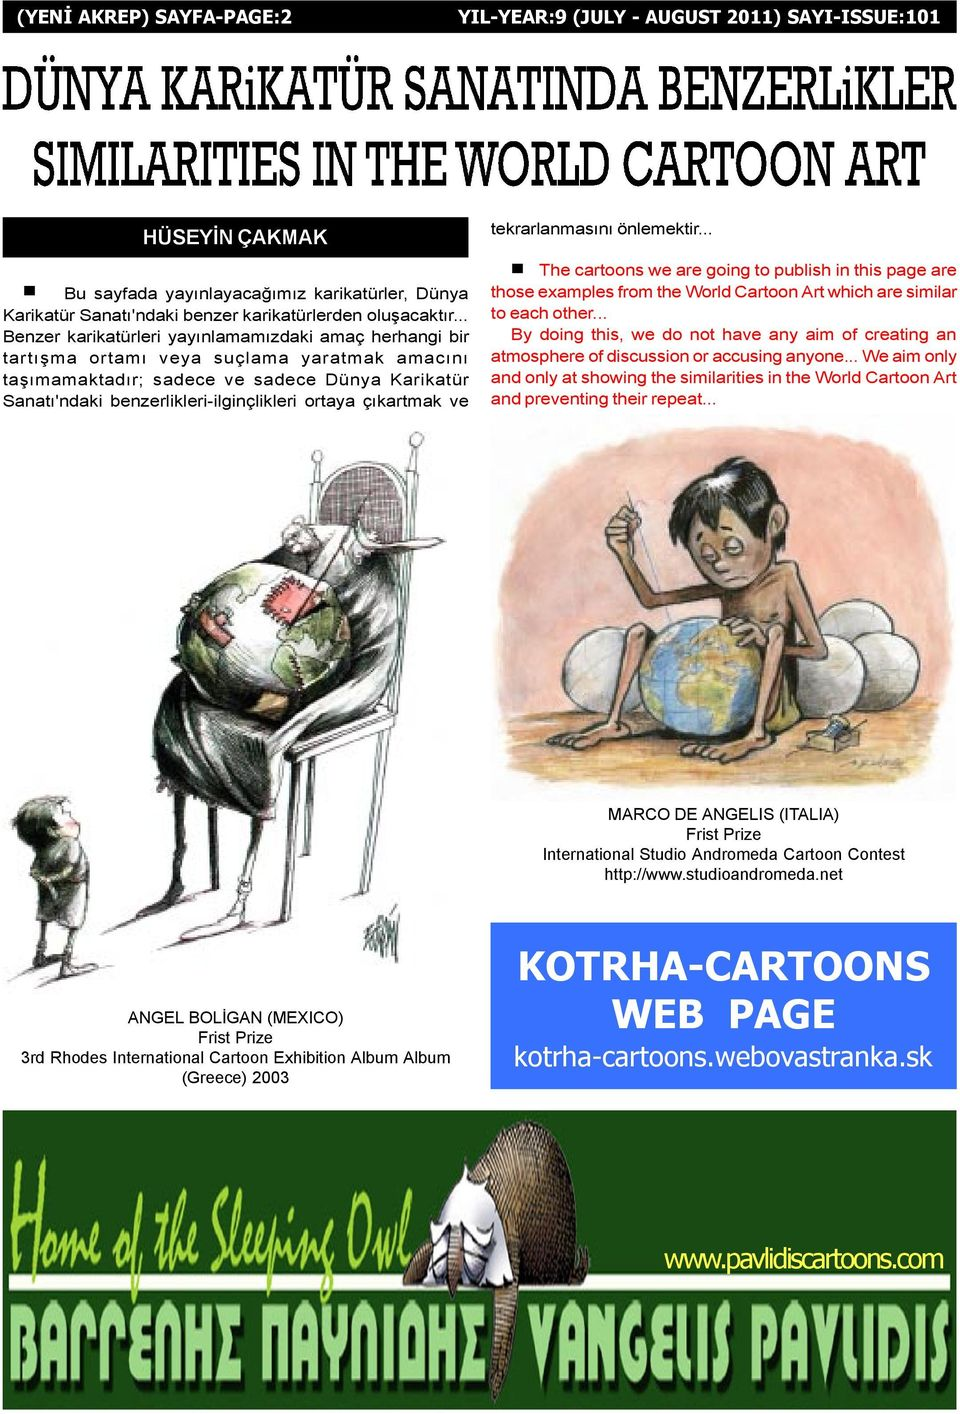 ortaya çýkartmak ve tekrarlanmasýný önlemektir... n The cartoons we are going to publish in this page are those examples from the World Cartoon Art which are similar to each other.